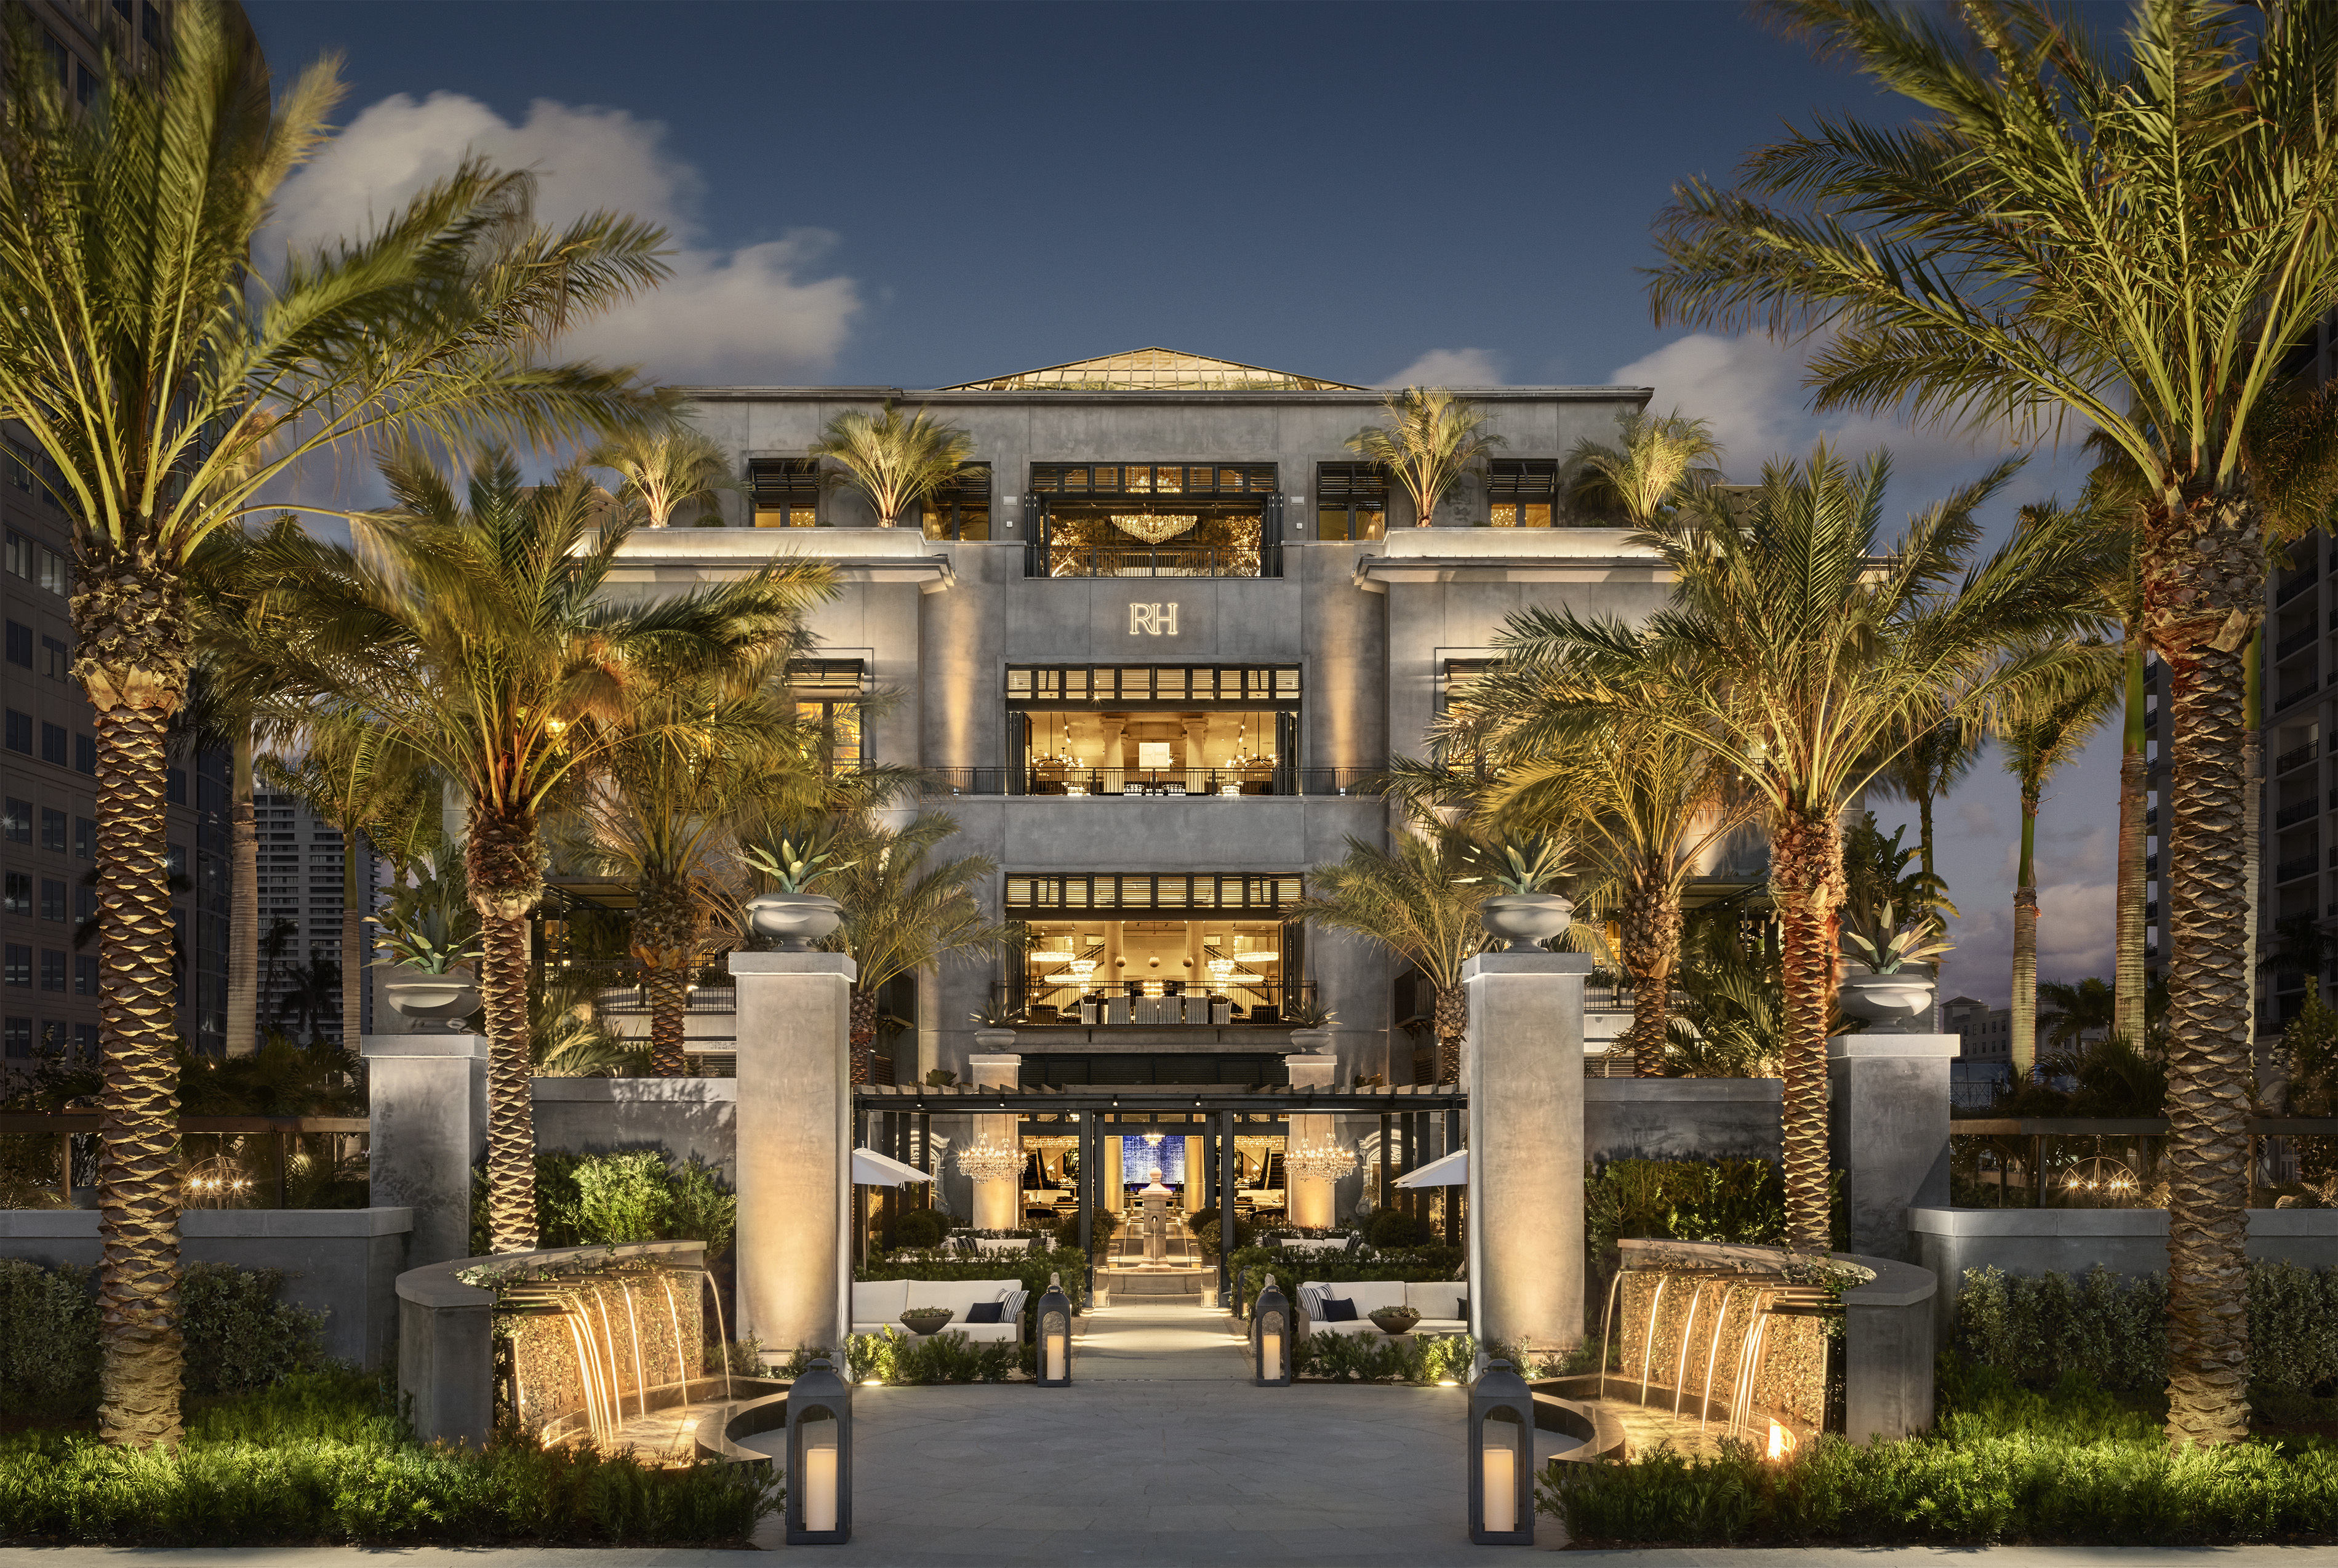 Rh unveils west palm the gallery at cityplace